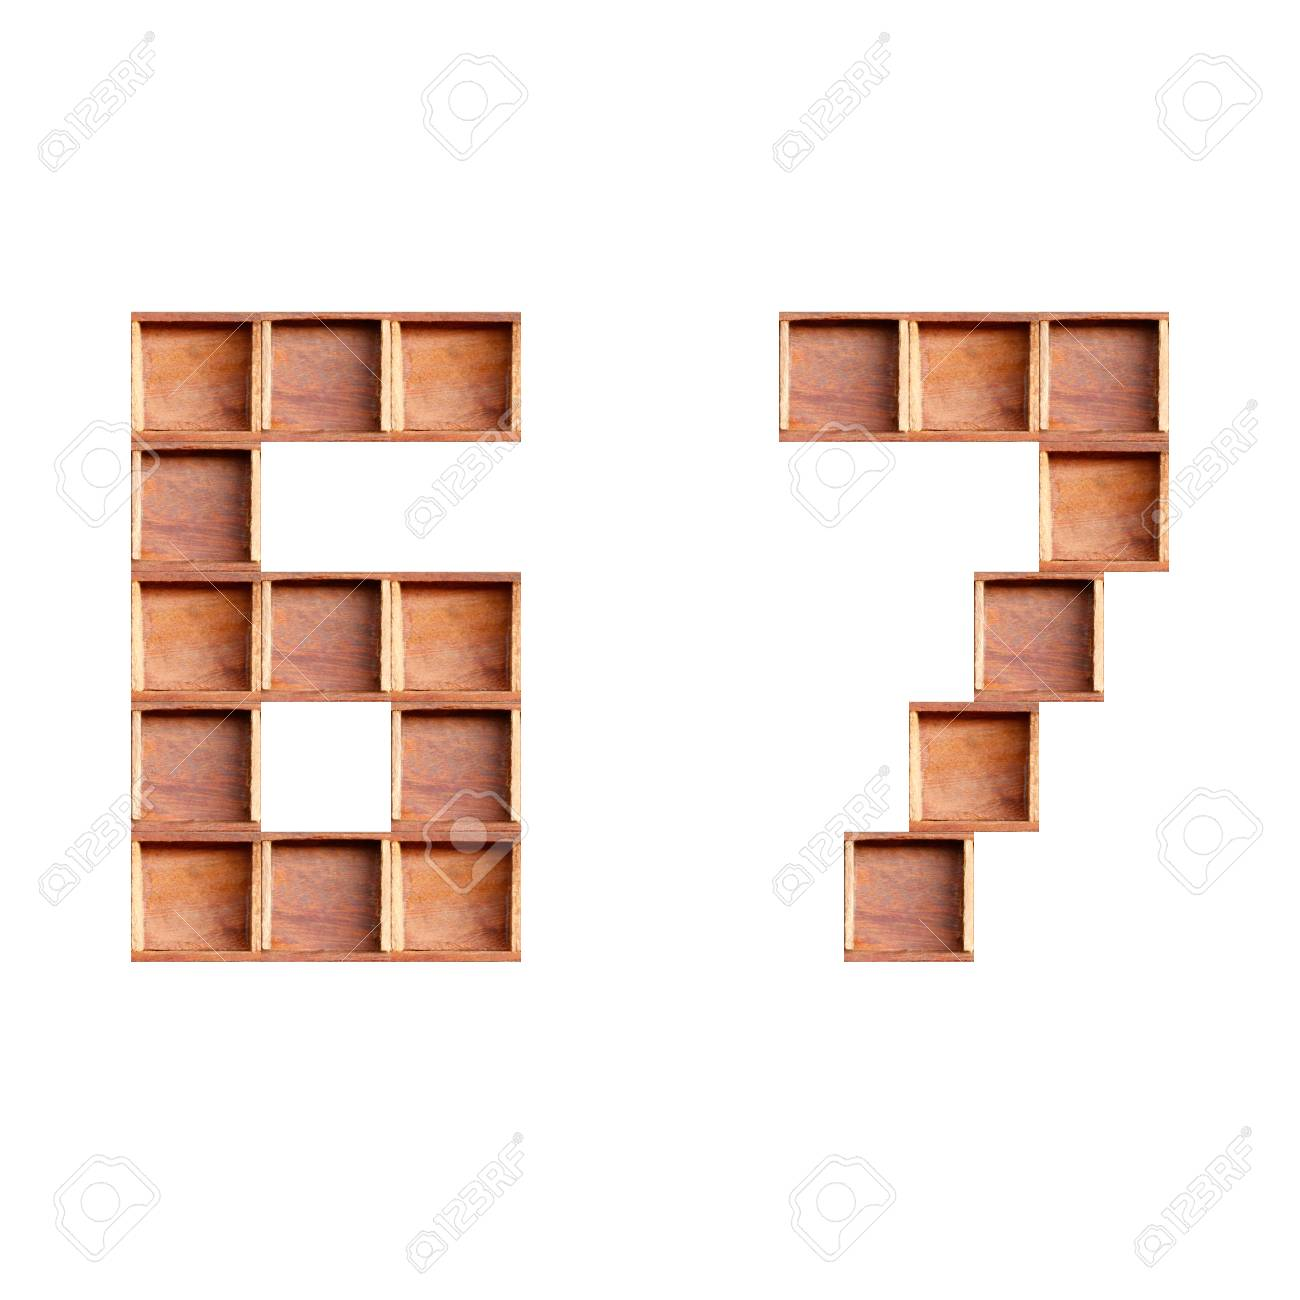 wooden box made of numbers  isolated on white background Stock Photo - 28232169